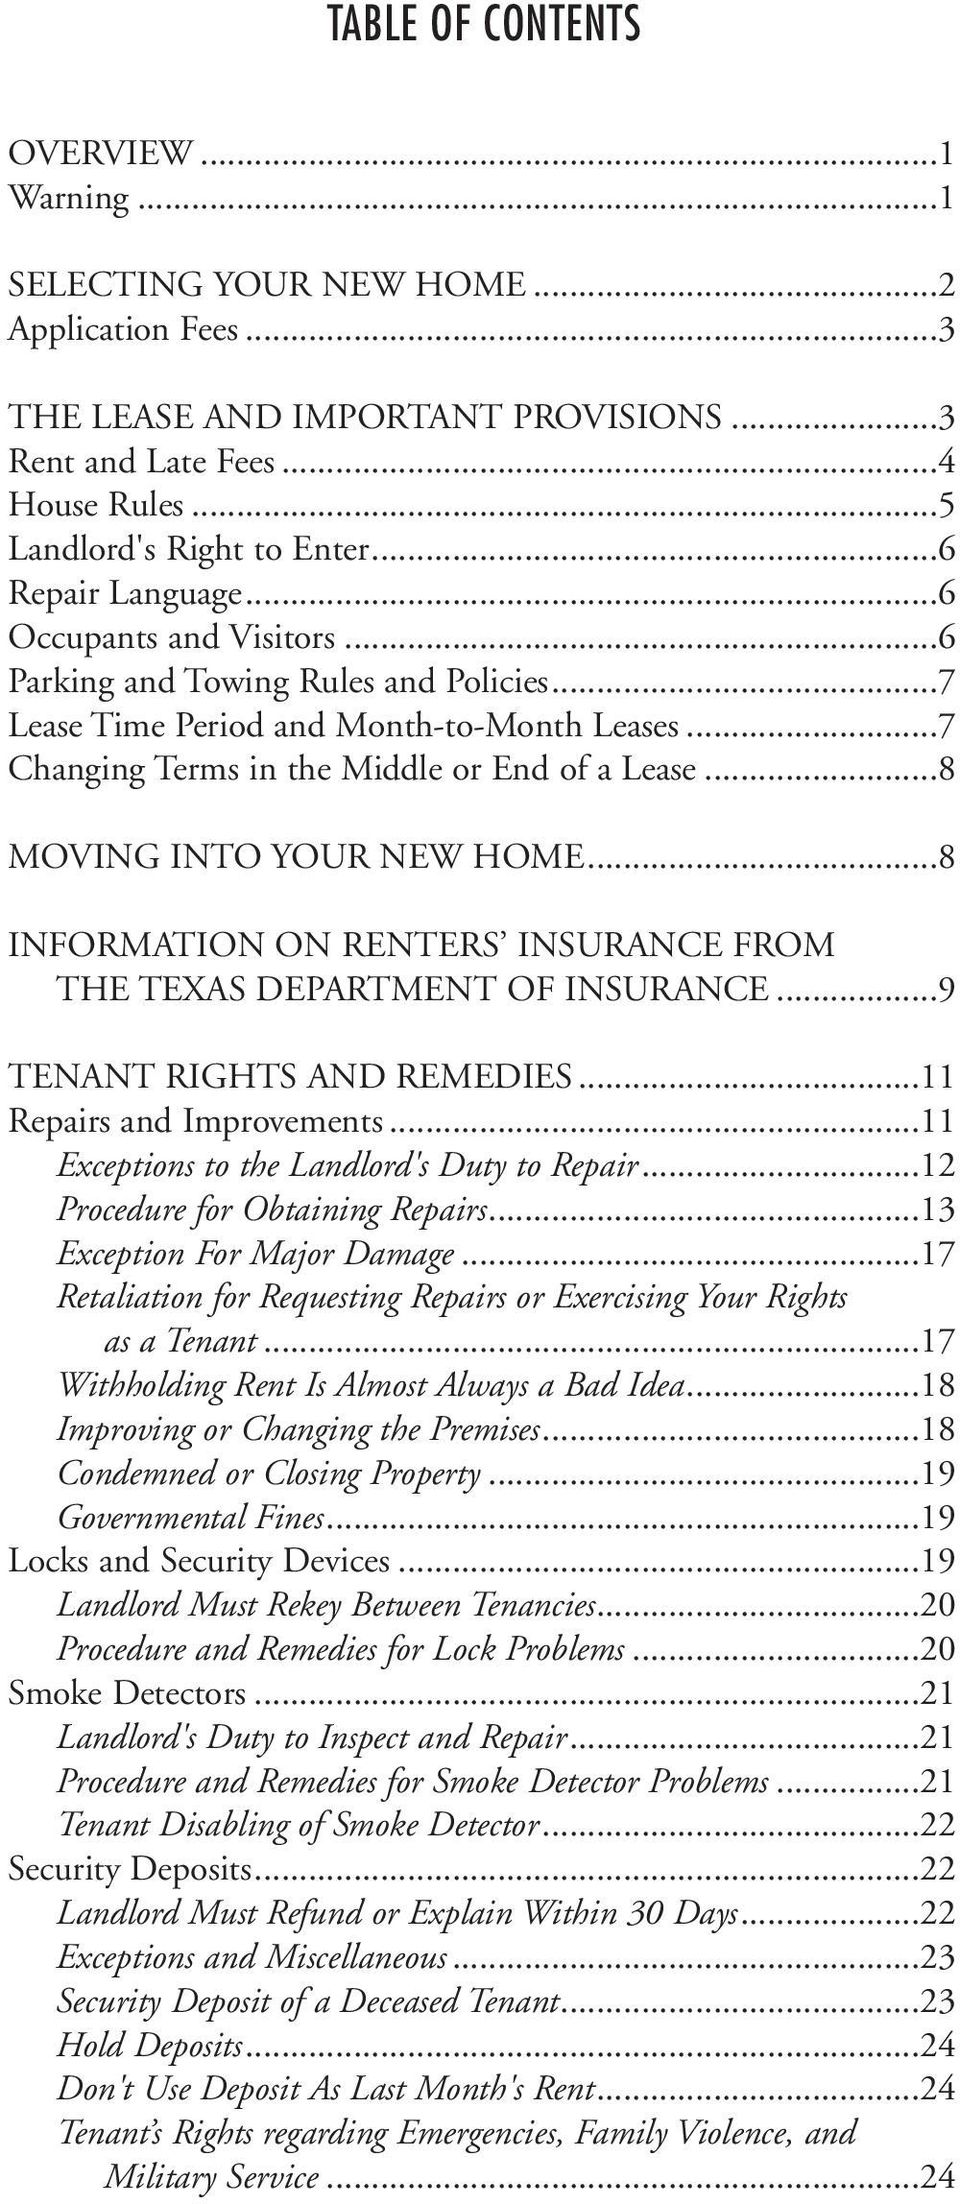 ..8 MOVING INTO YOUR NEW HOME...8 INFORMATION ON RENTERS INSURANCE FROM THE TEXAS DEPARTMENT OF INSURANCE...9 TENANT RIGHTS AND REMEDIES...11 Repairs and Improvements.